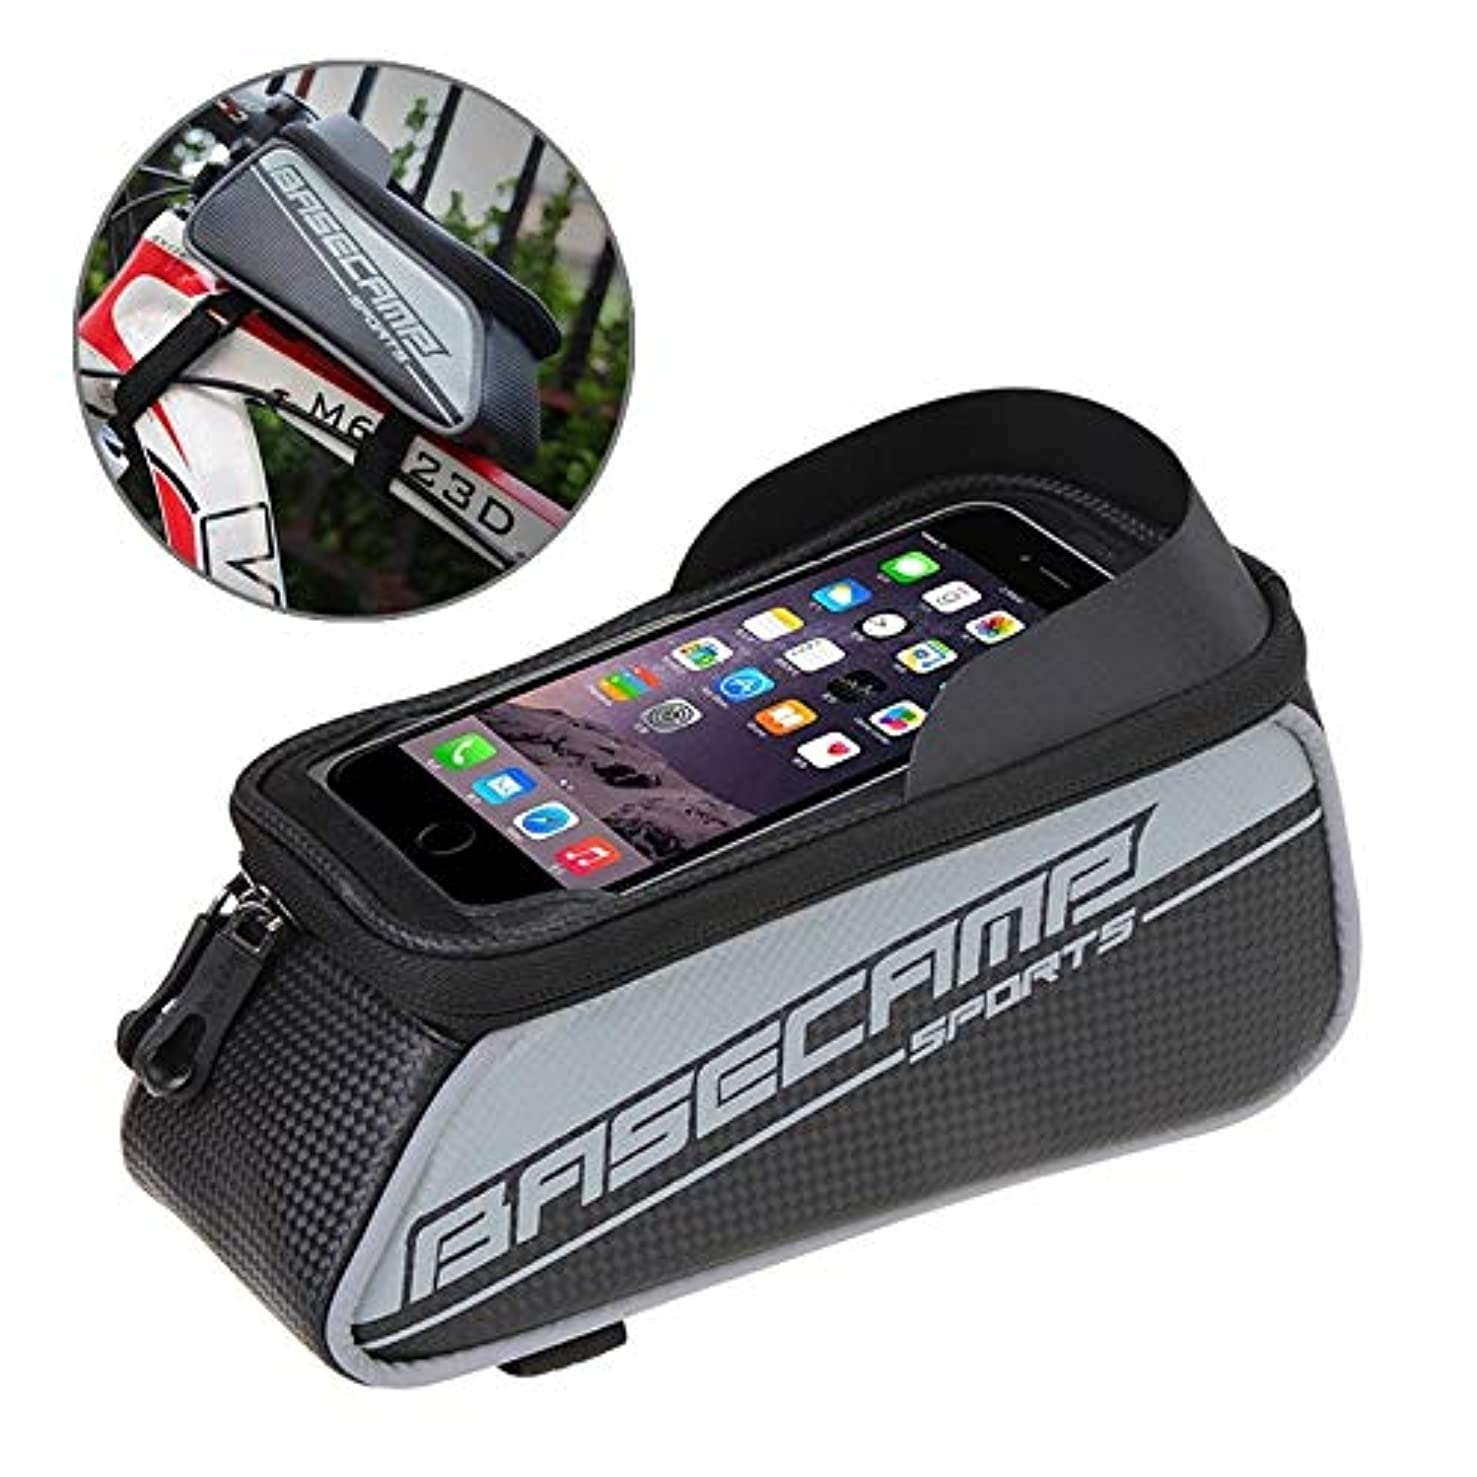 Shengjuanfeng Bicycle Phone Bags Mountain Road Bike Front Head Top Frame Handlebar Bag with Transparent Window & Sun Visor for 158cm and Below Smartphones, Big Size